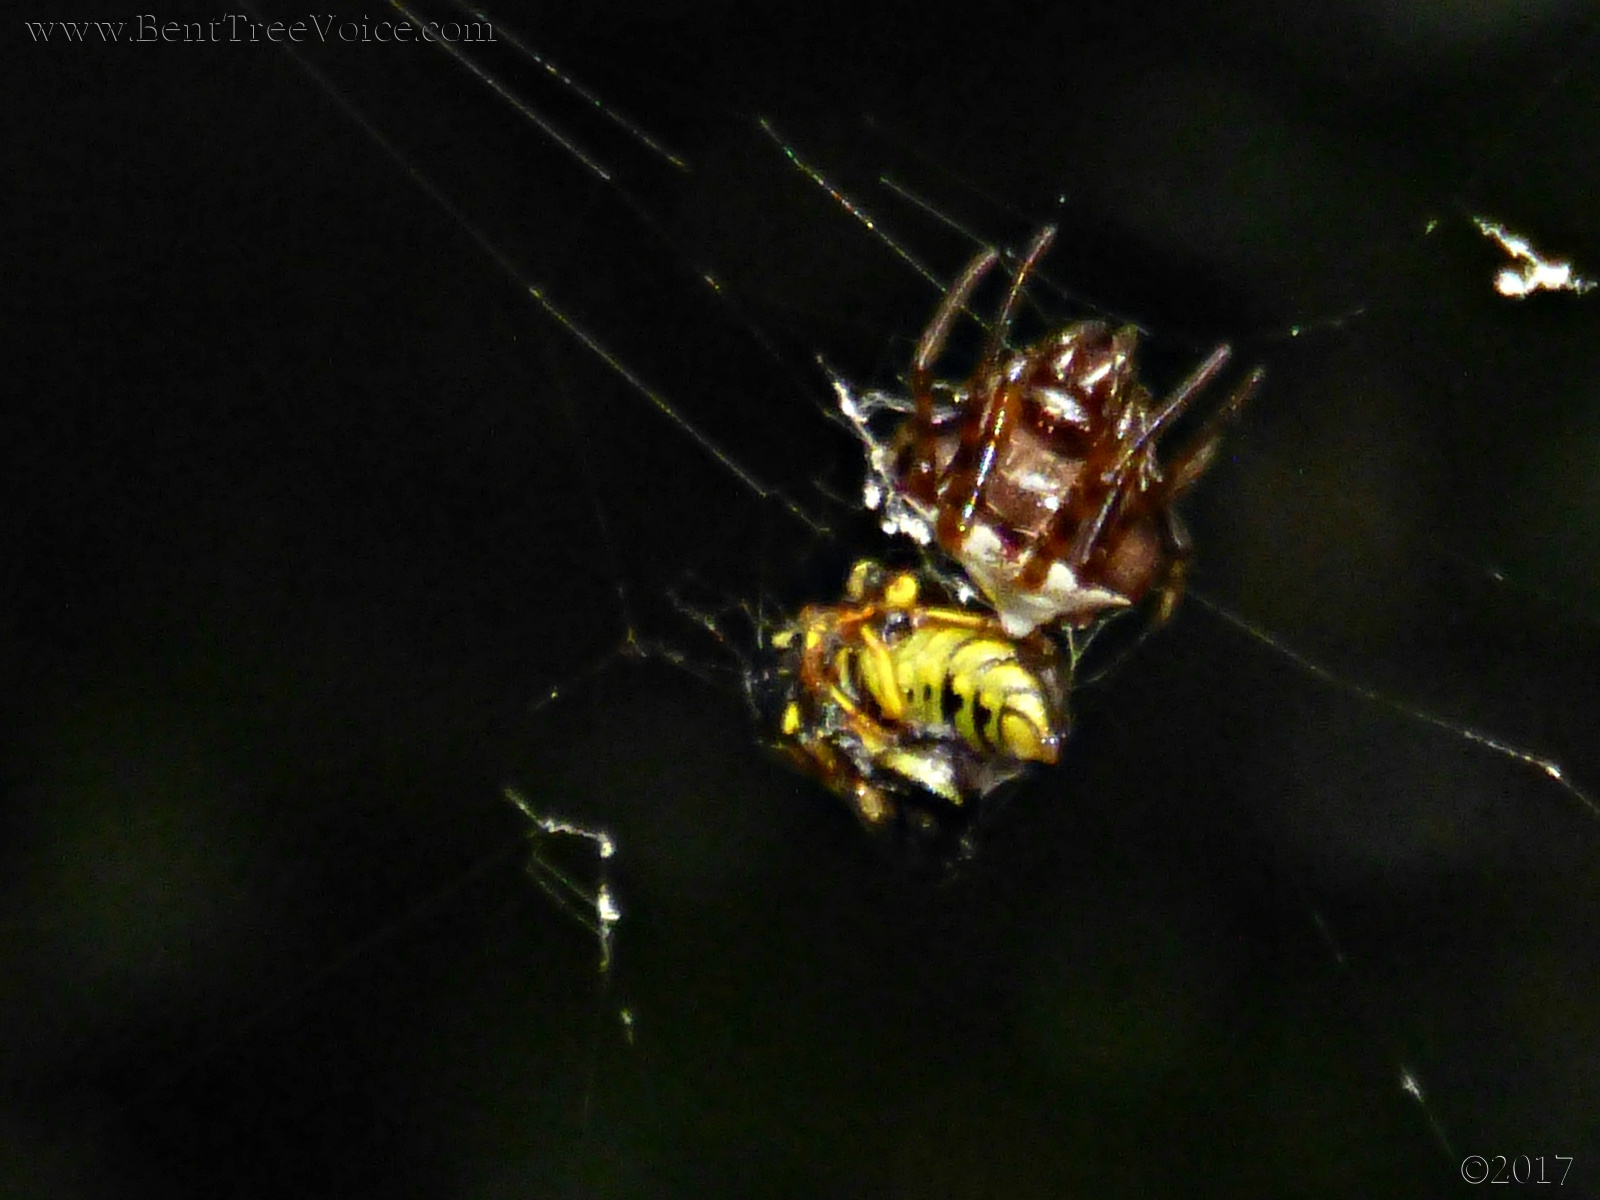 September 14, 2017 - Spider vs Yellow Jacket in Bent Tree (click image to zoom)